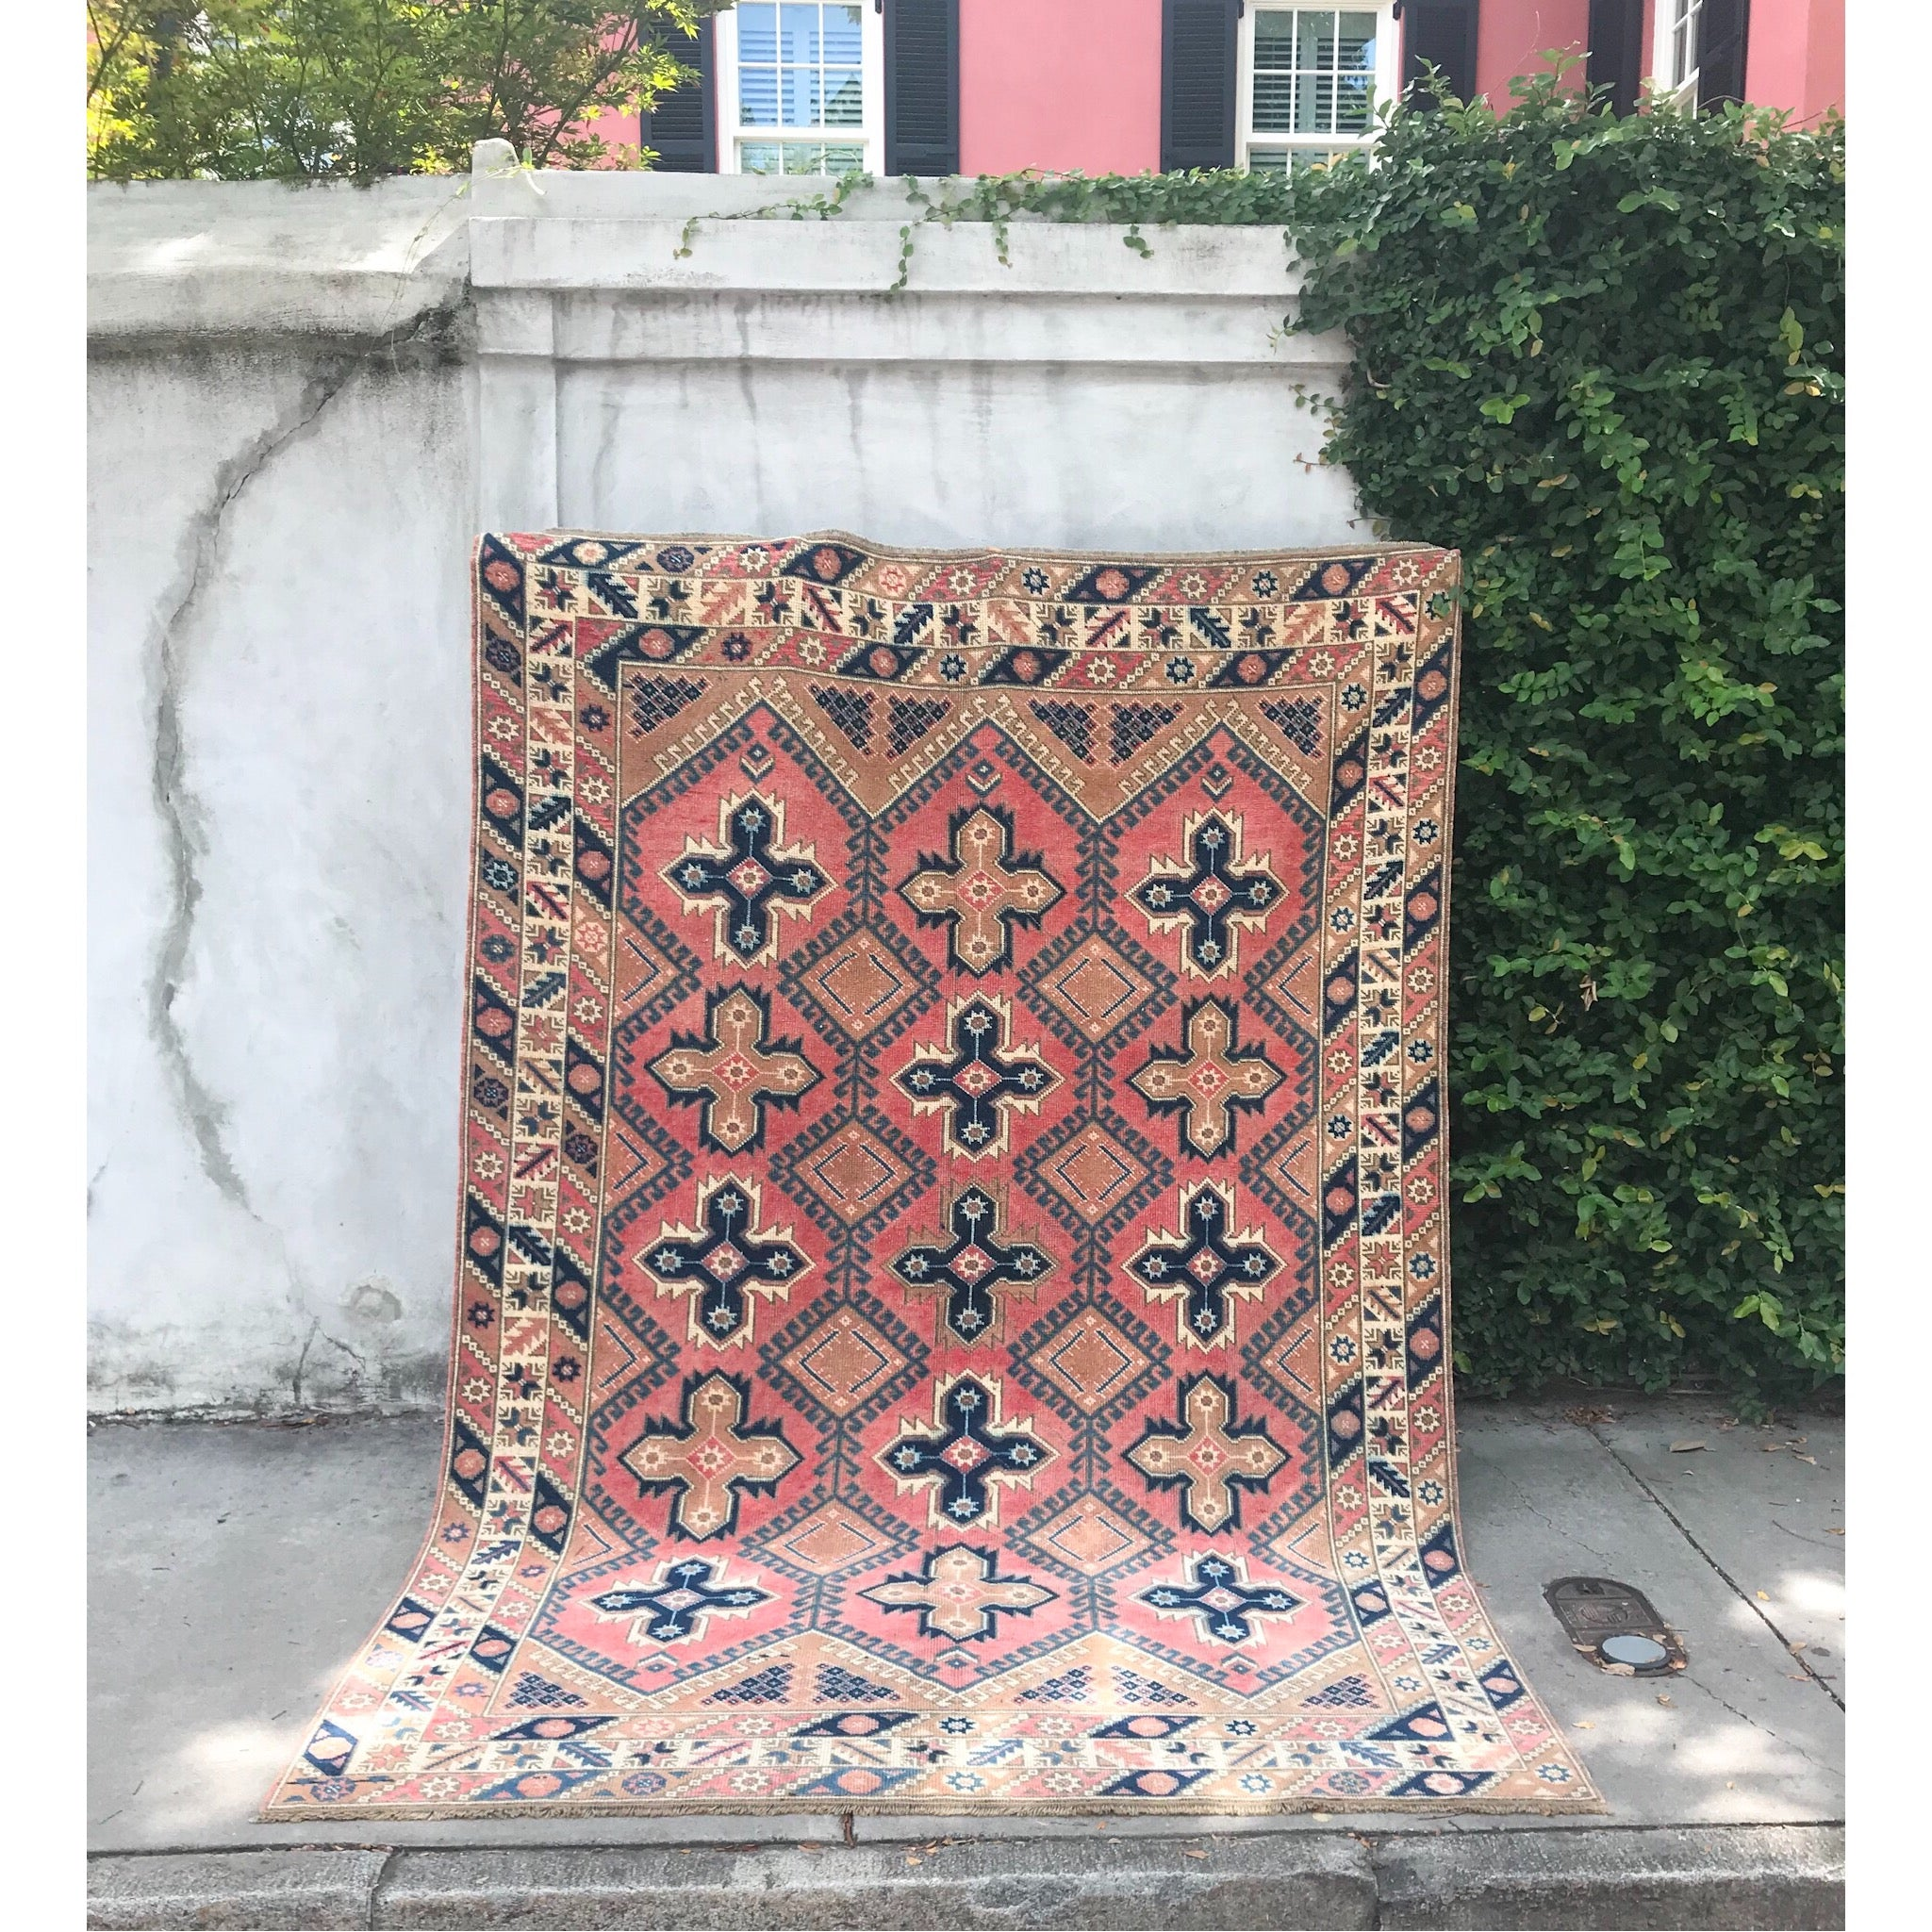 6x9 vintage Turkish rug